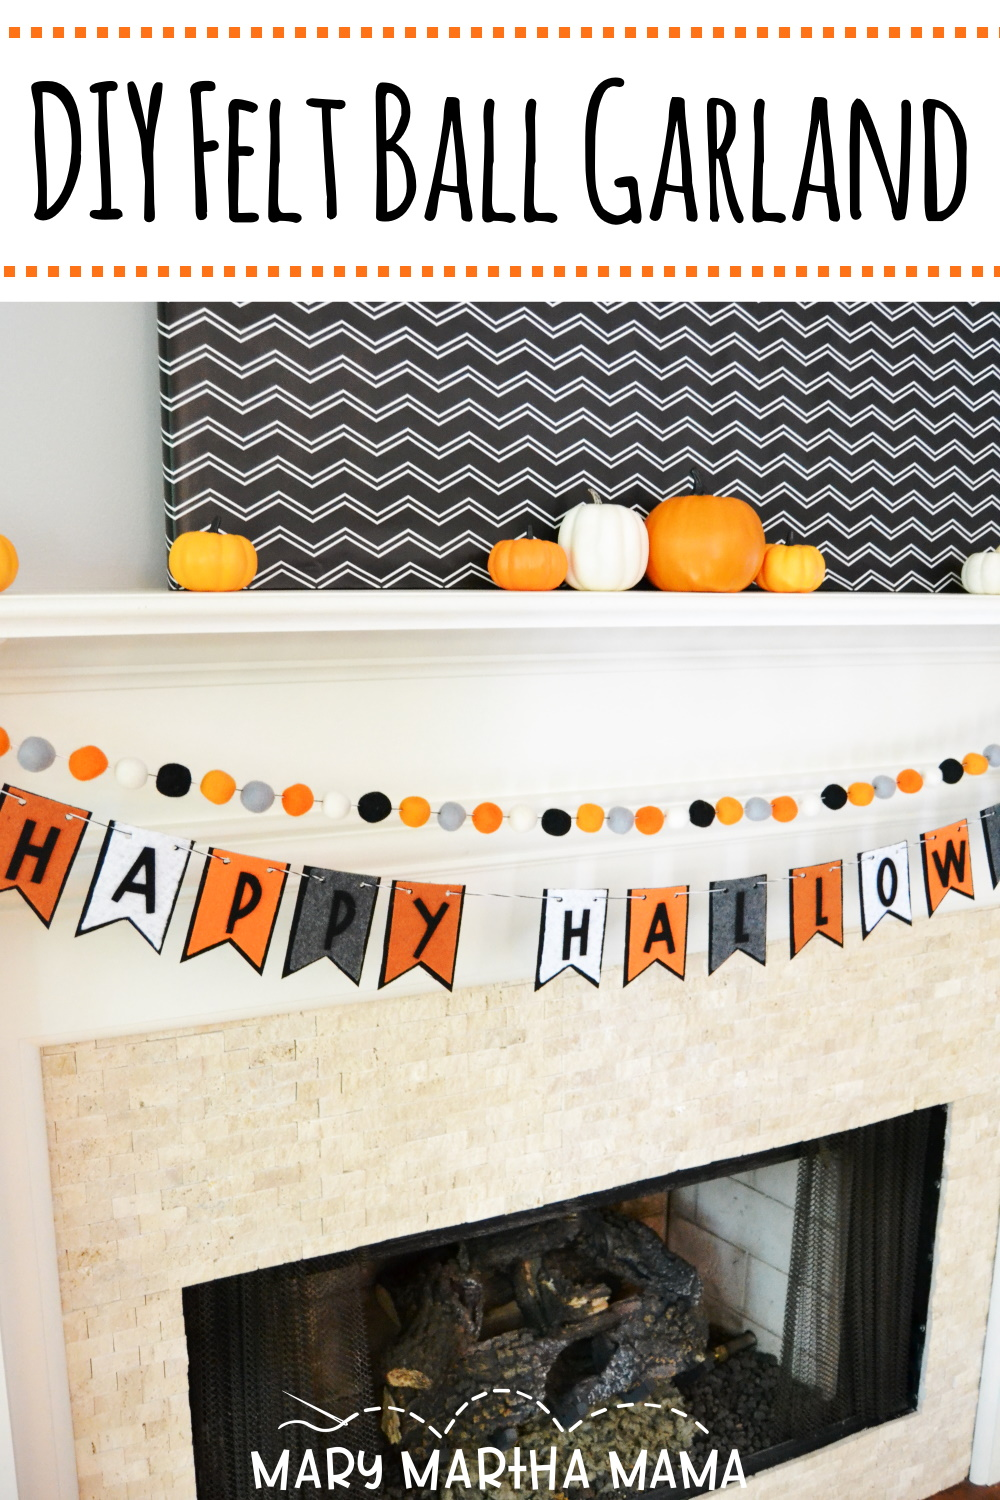 Make your own DIY Felt Ball Garland following this super simple tutorial with tips and information about where to source the felt wool balls.